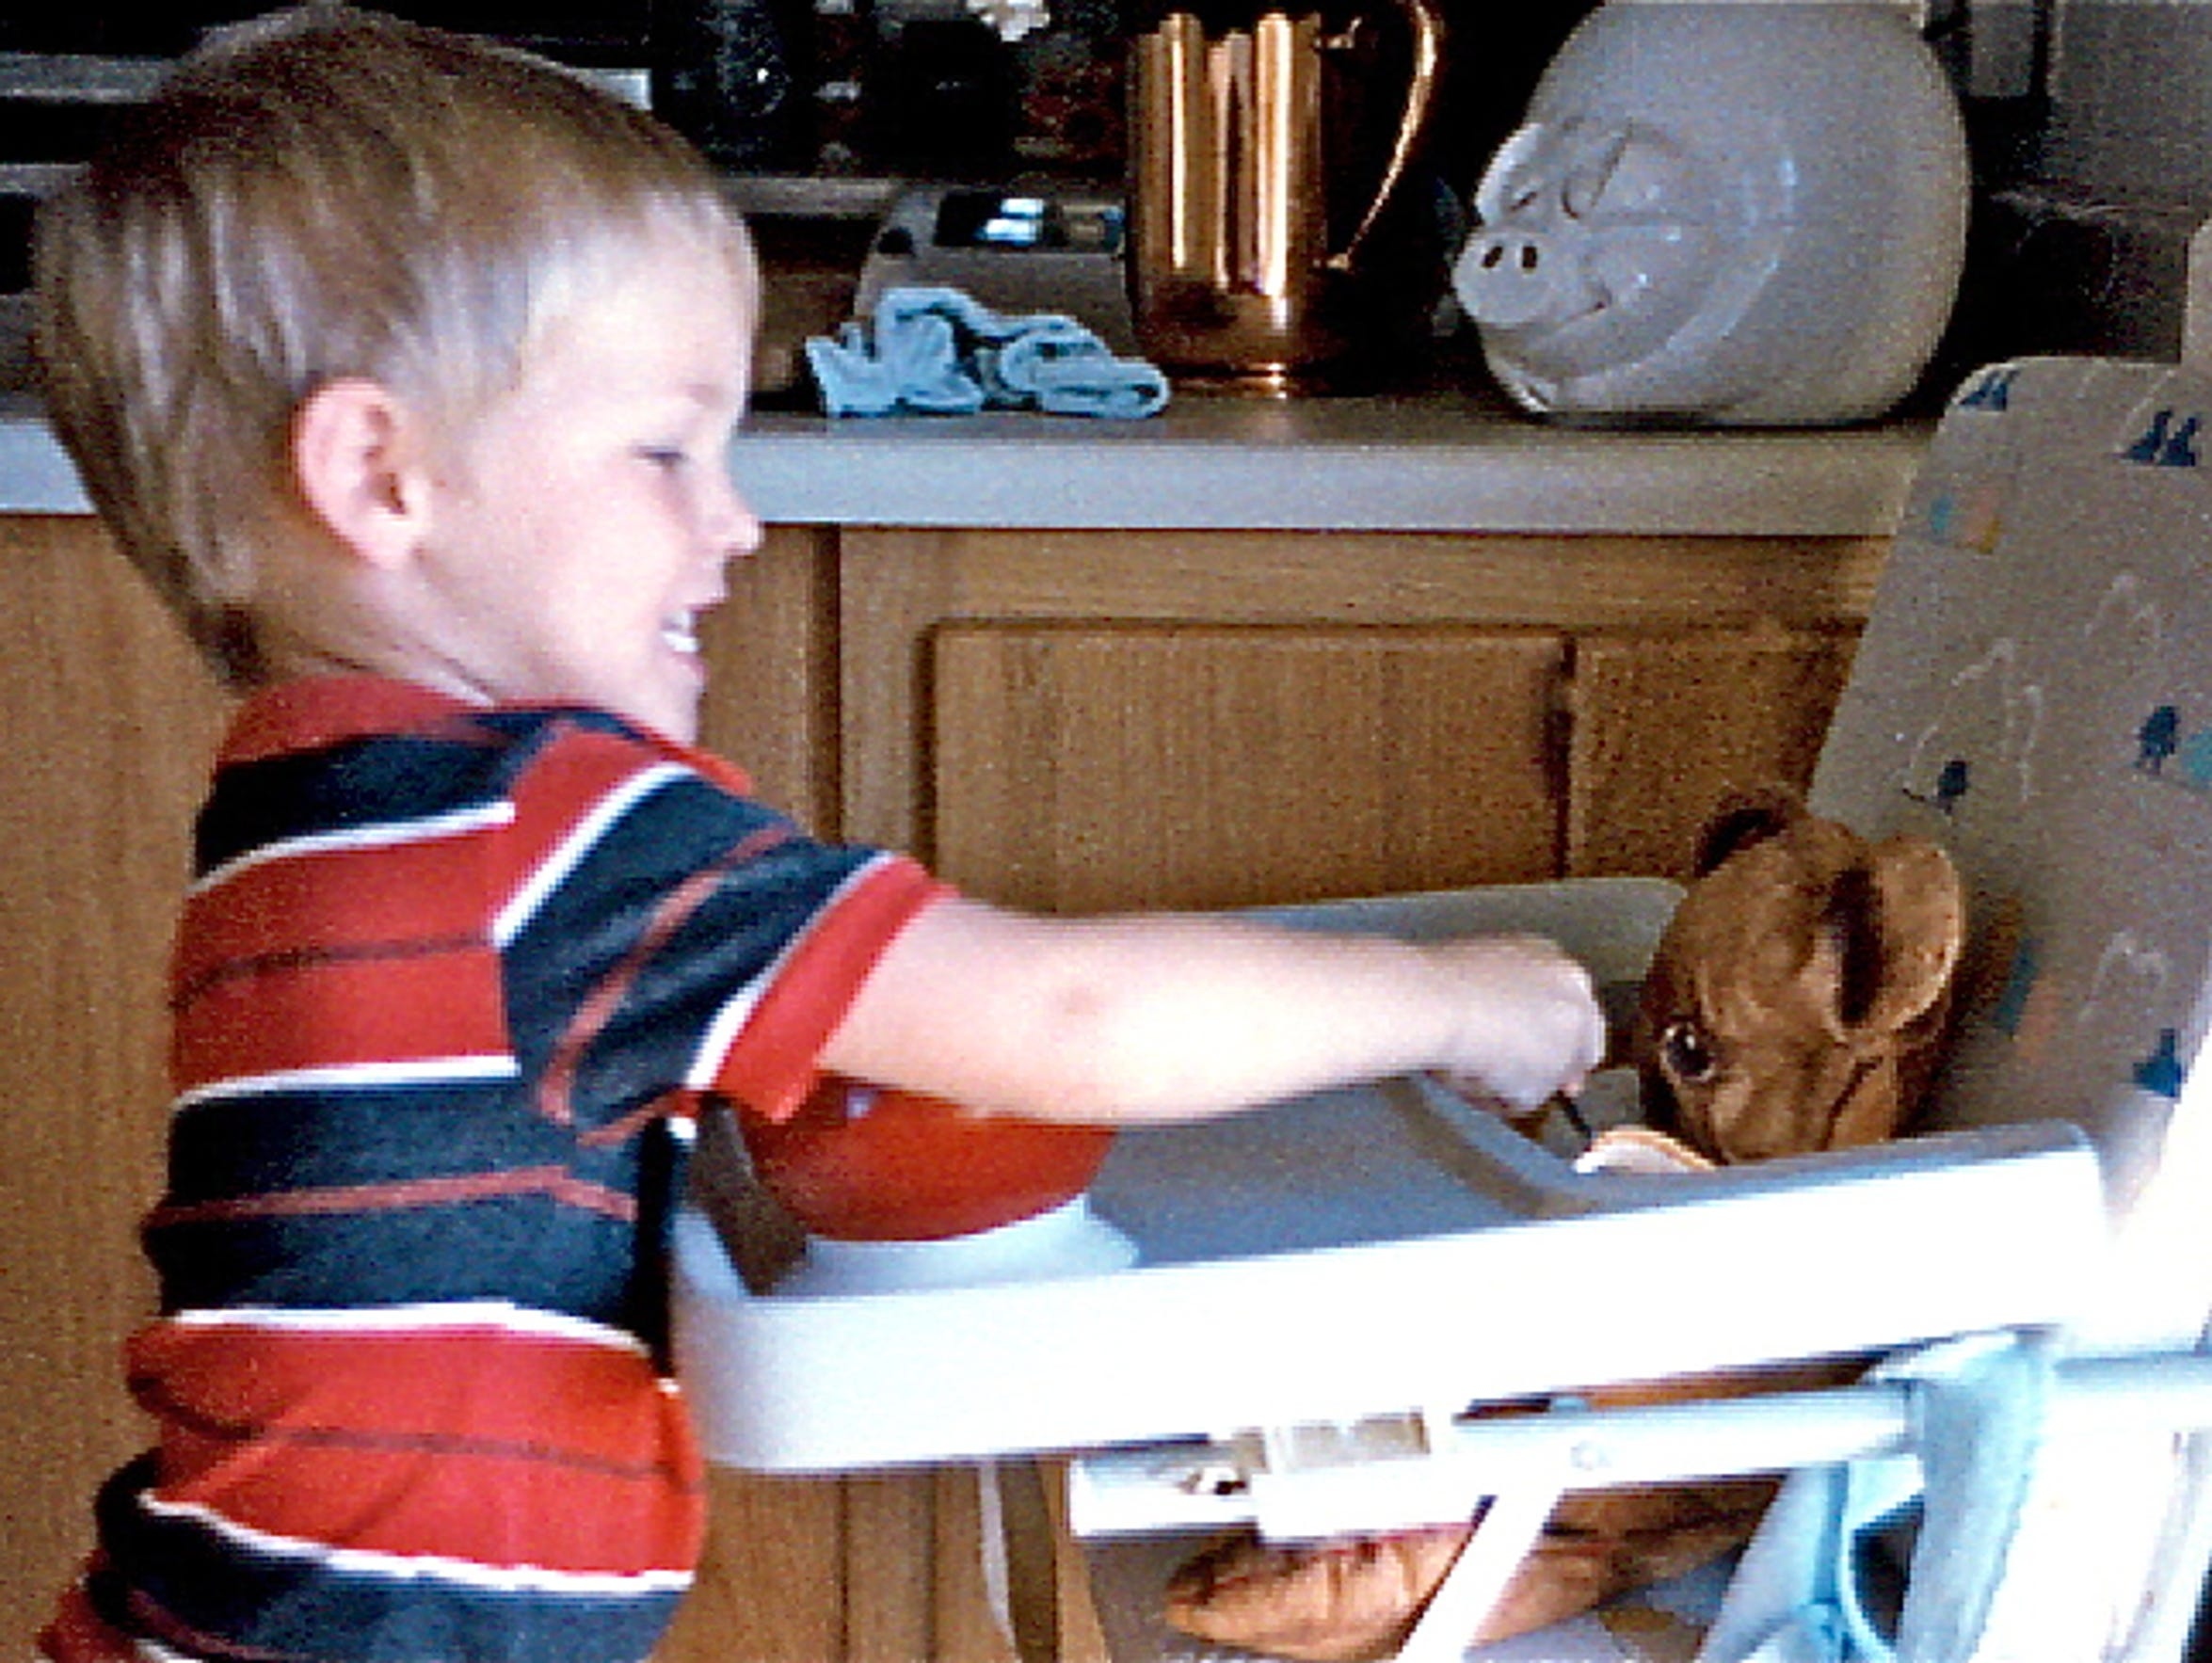 Sandy Swenson's son, Joey, feeds a stuffed bear as